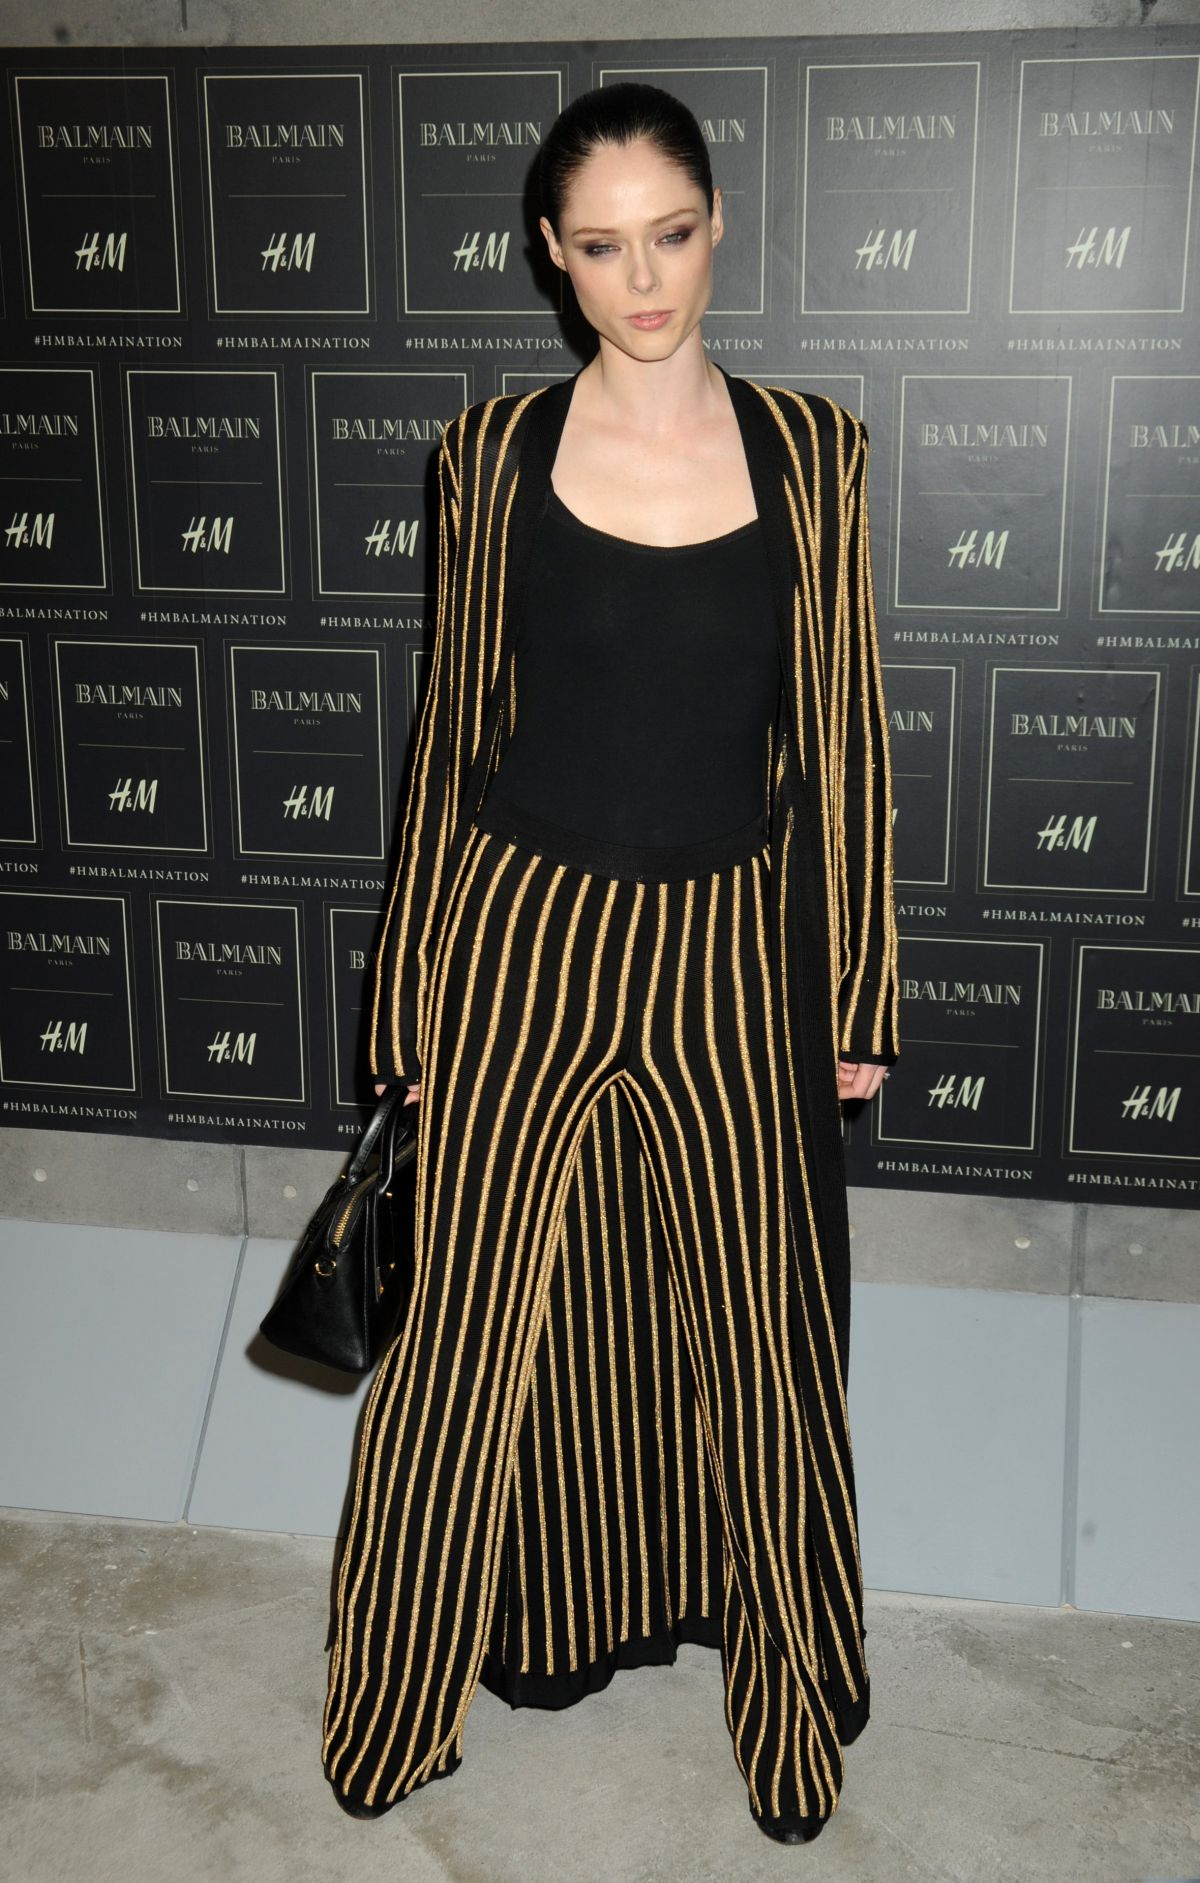 COCO ROCHA at Balmain X H&M Collection Launch in New York 10/20/2015